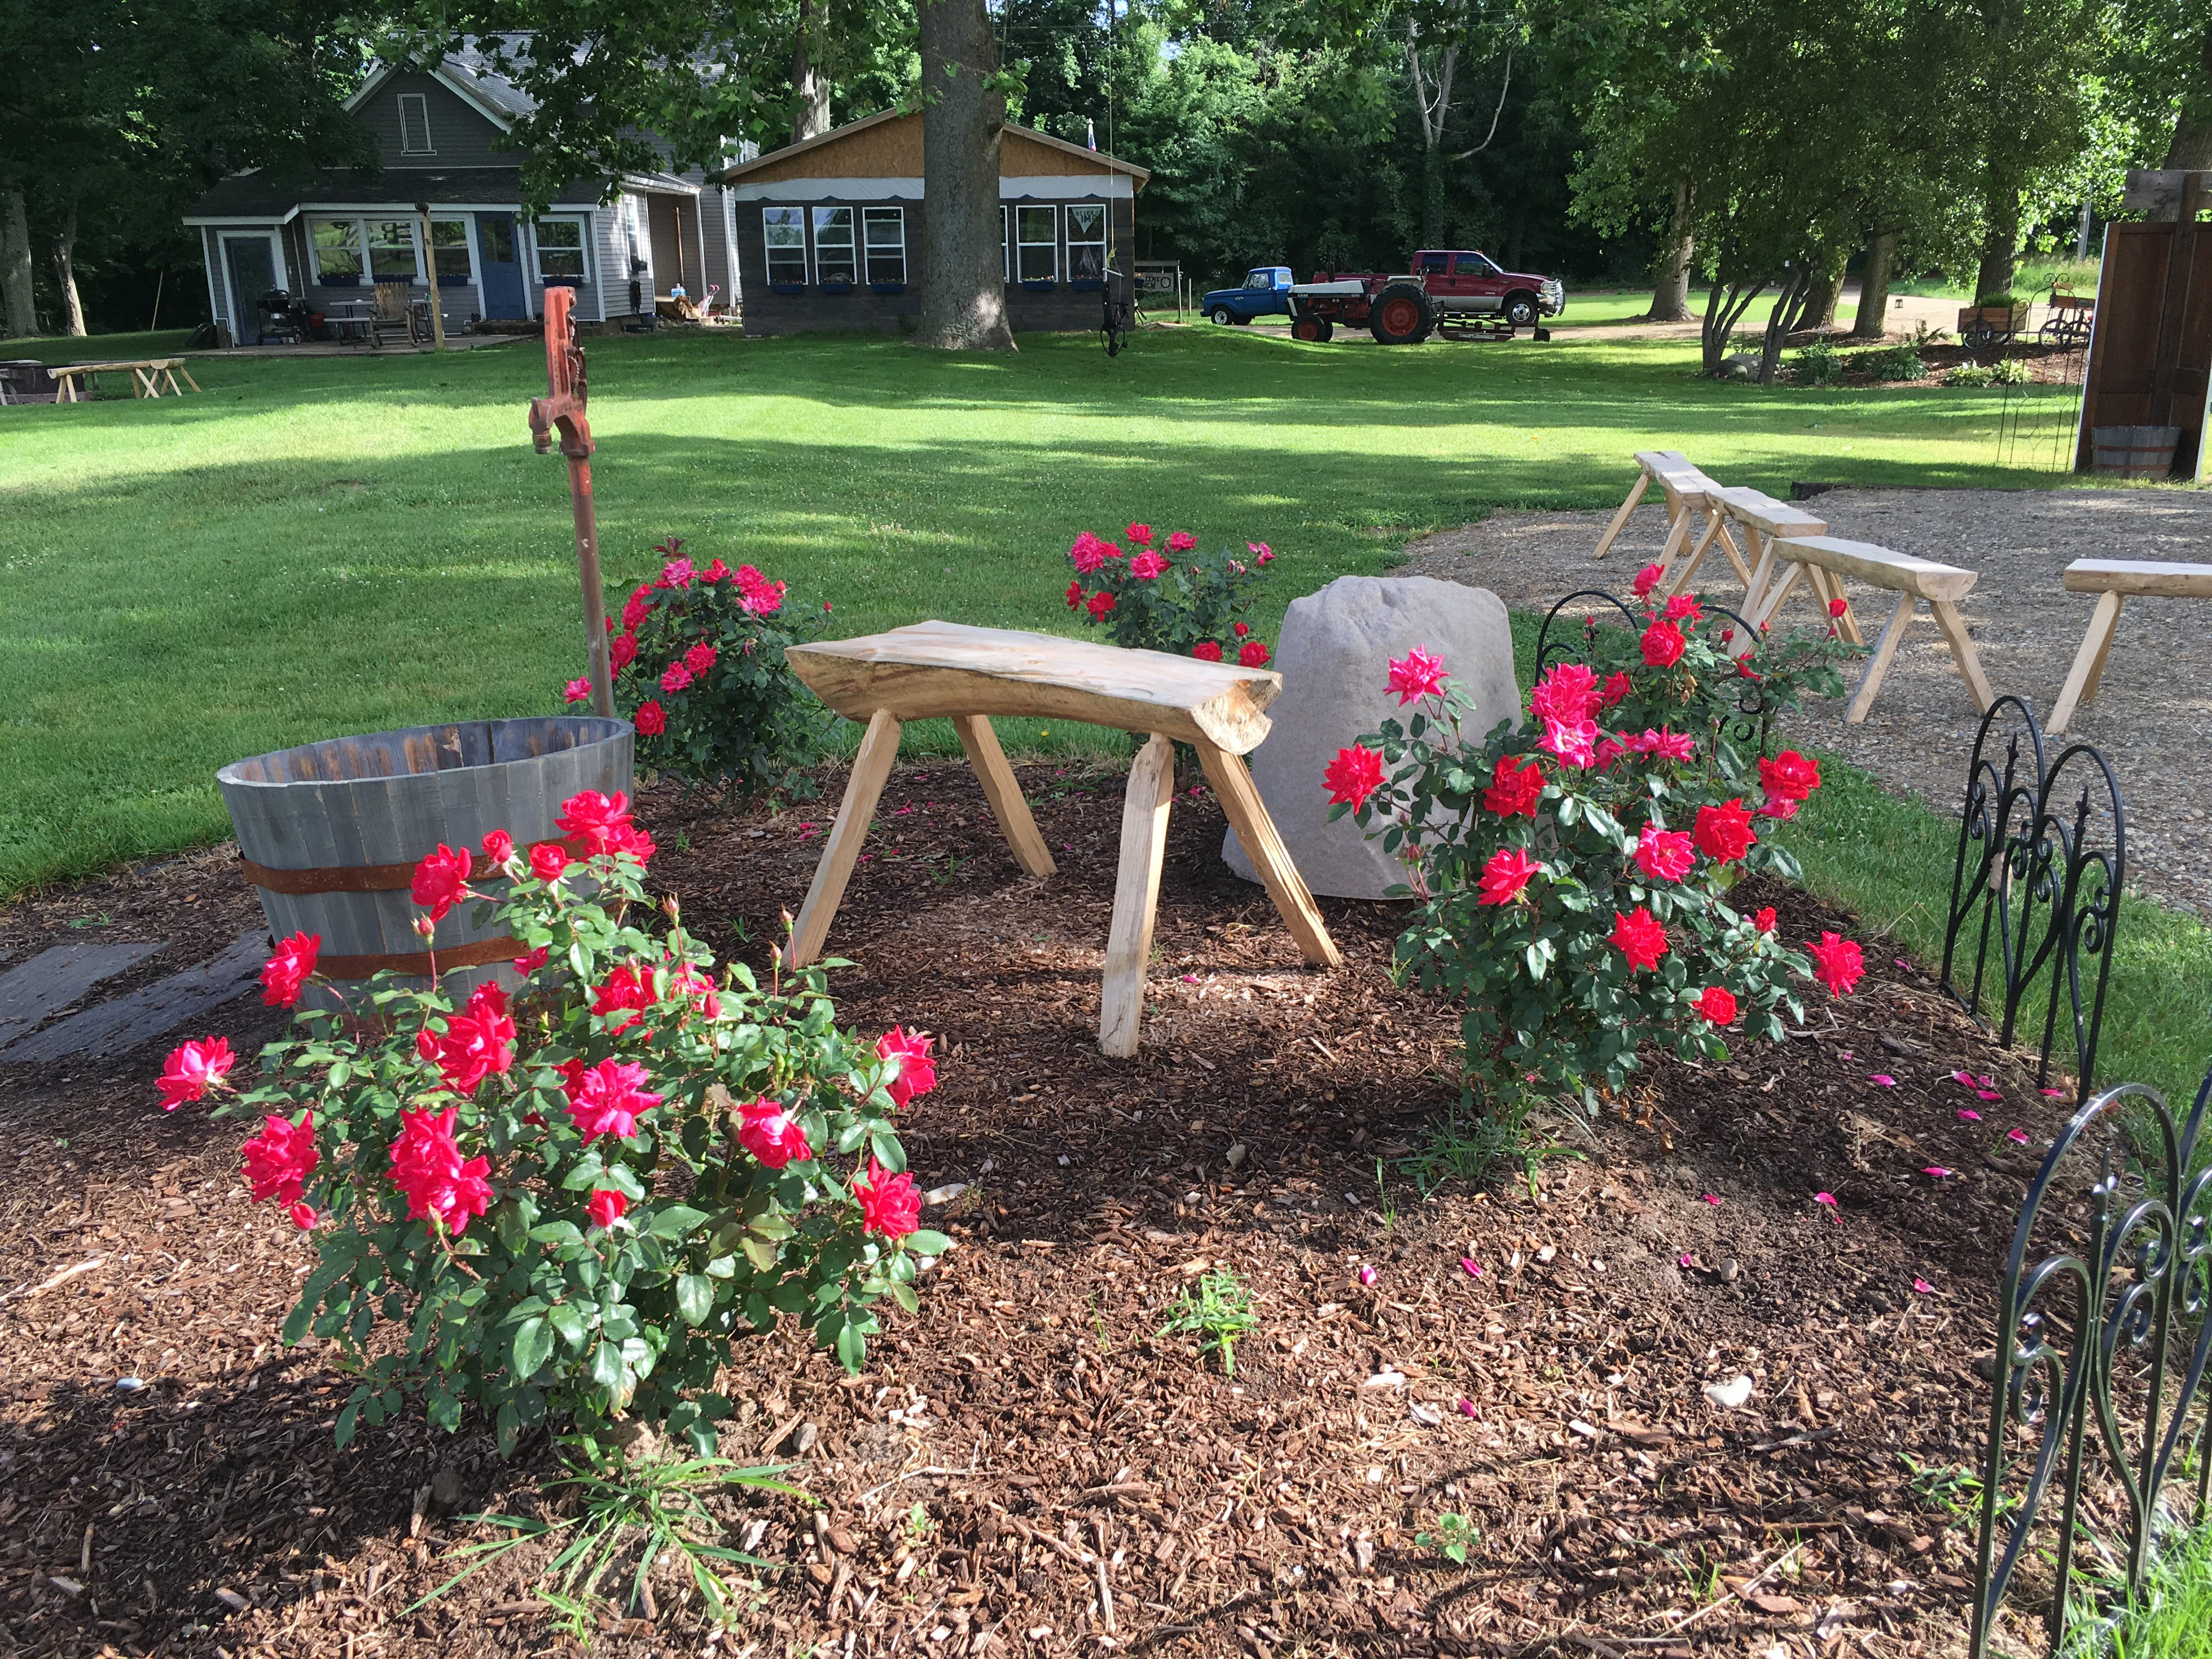 Amazing flowers and landscaping done with homemade benches.